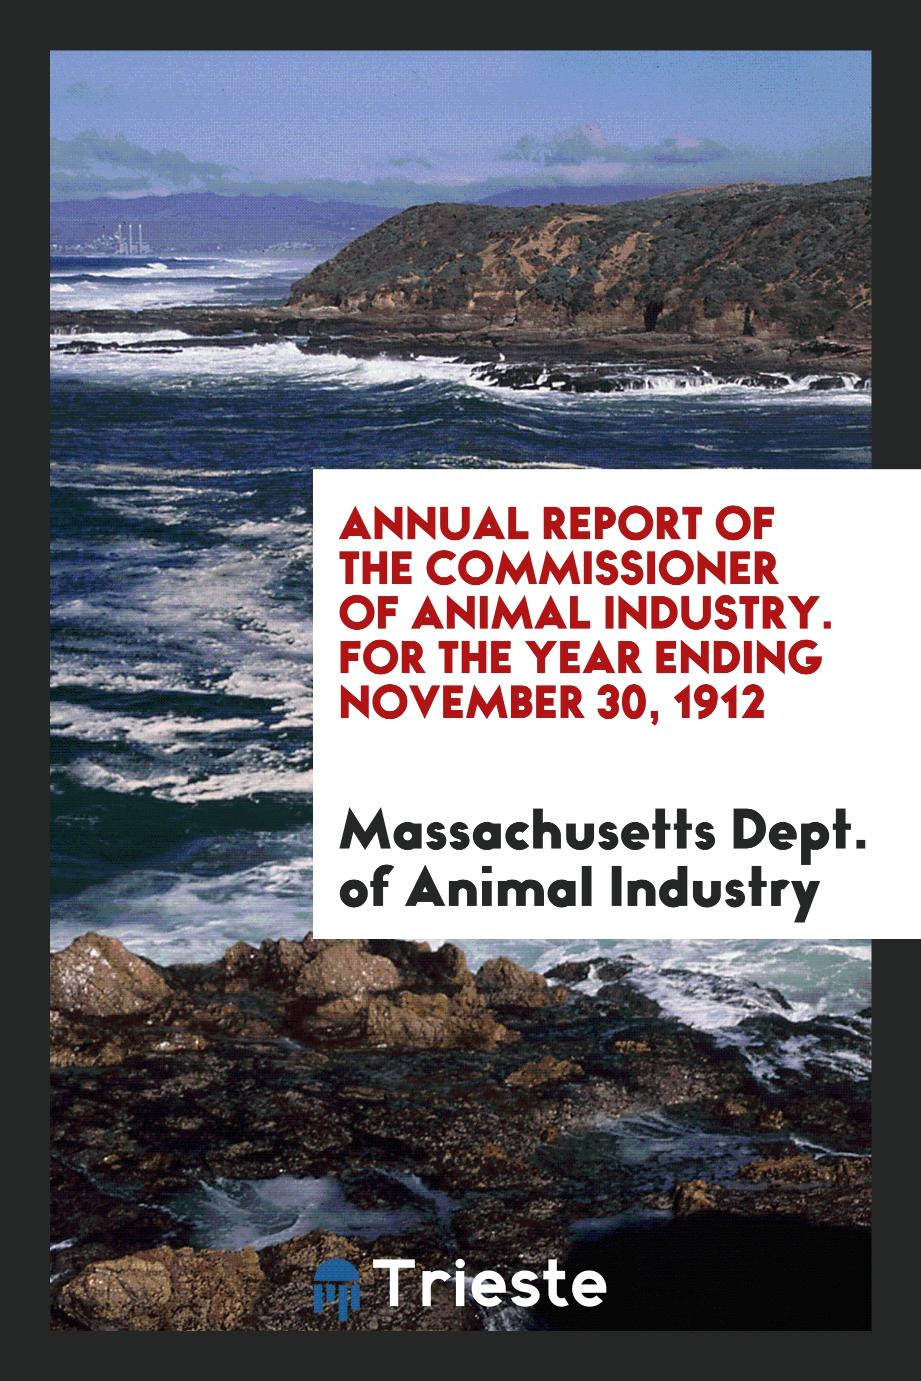 Annual Report of the commissioner of animal industry. For the year ending November 30, 1912